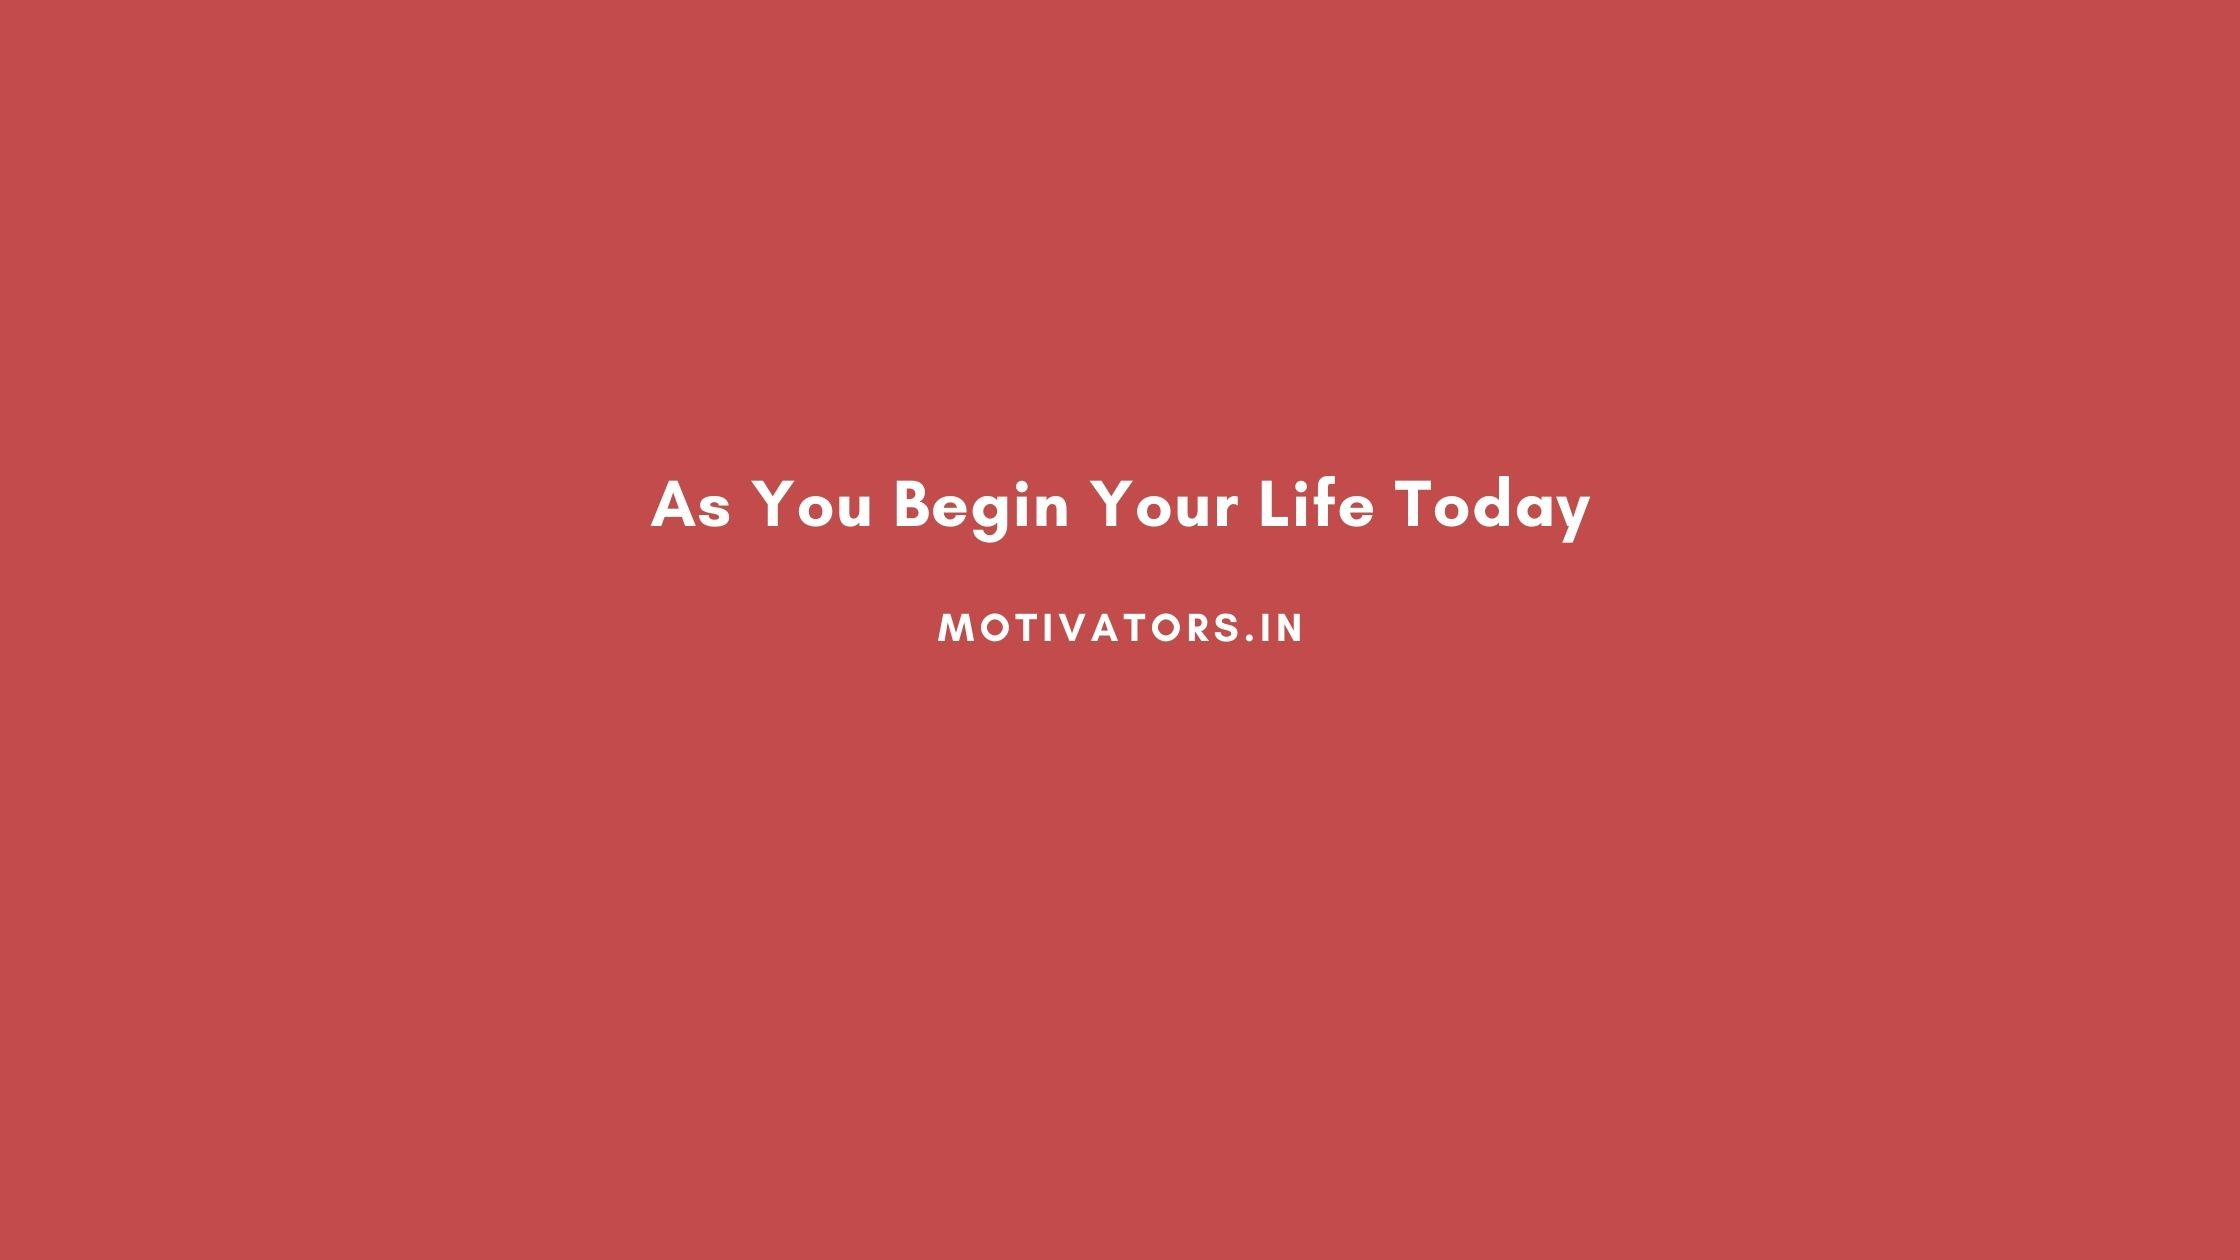 As You Begin Your Life Today